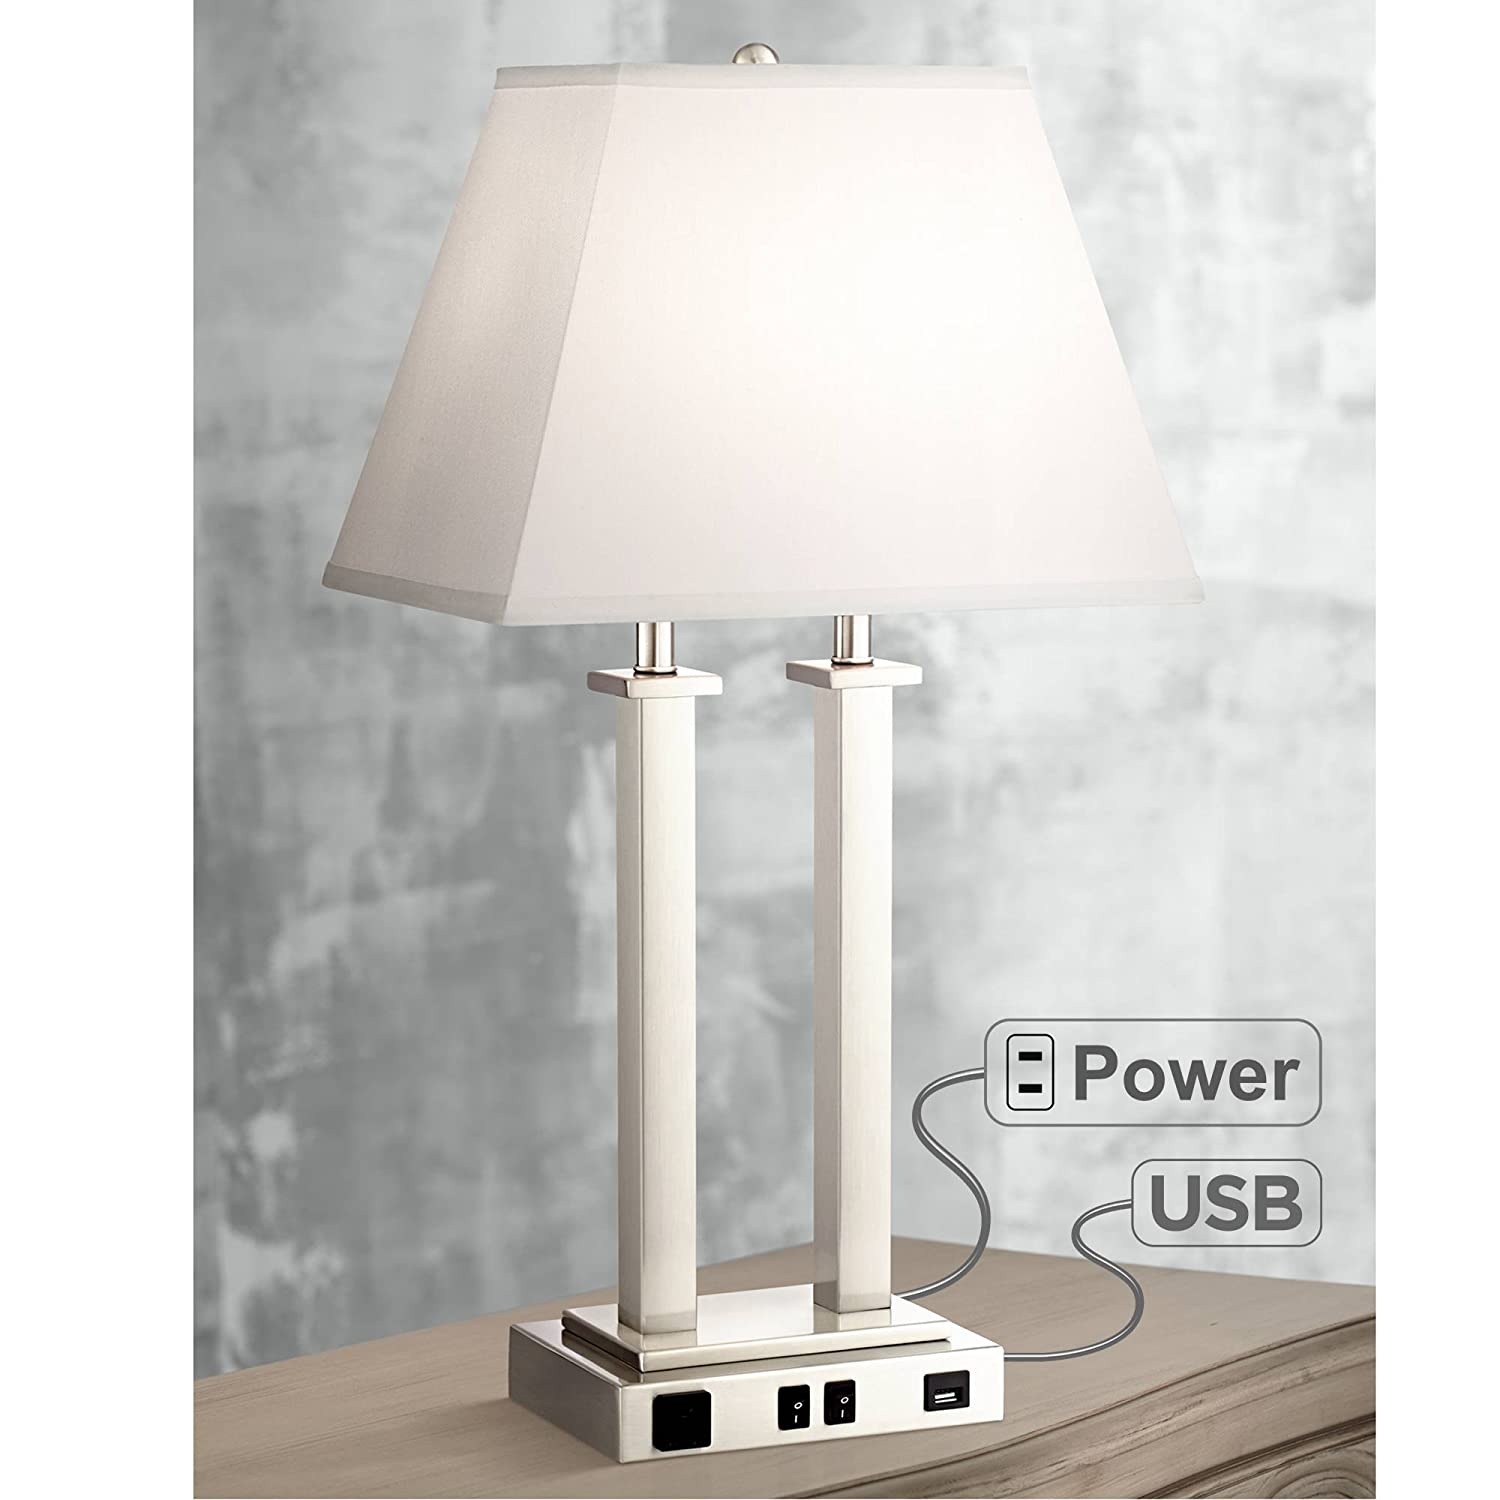 Amity Modern Table Lamp with Hotel Style USB AC Outlet Brushed Nickel Side Outlet for Bedroom Endtable Nightstand – Possini Euro Design